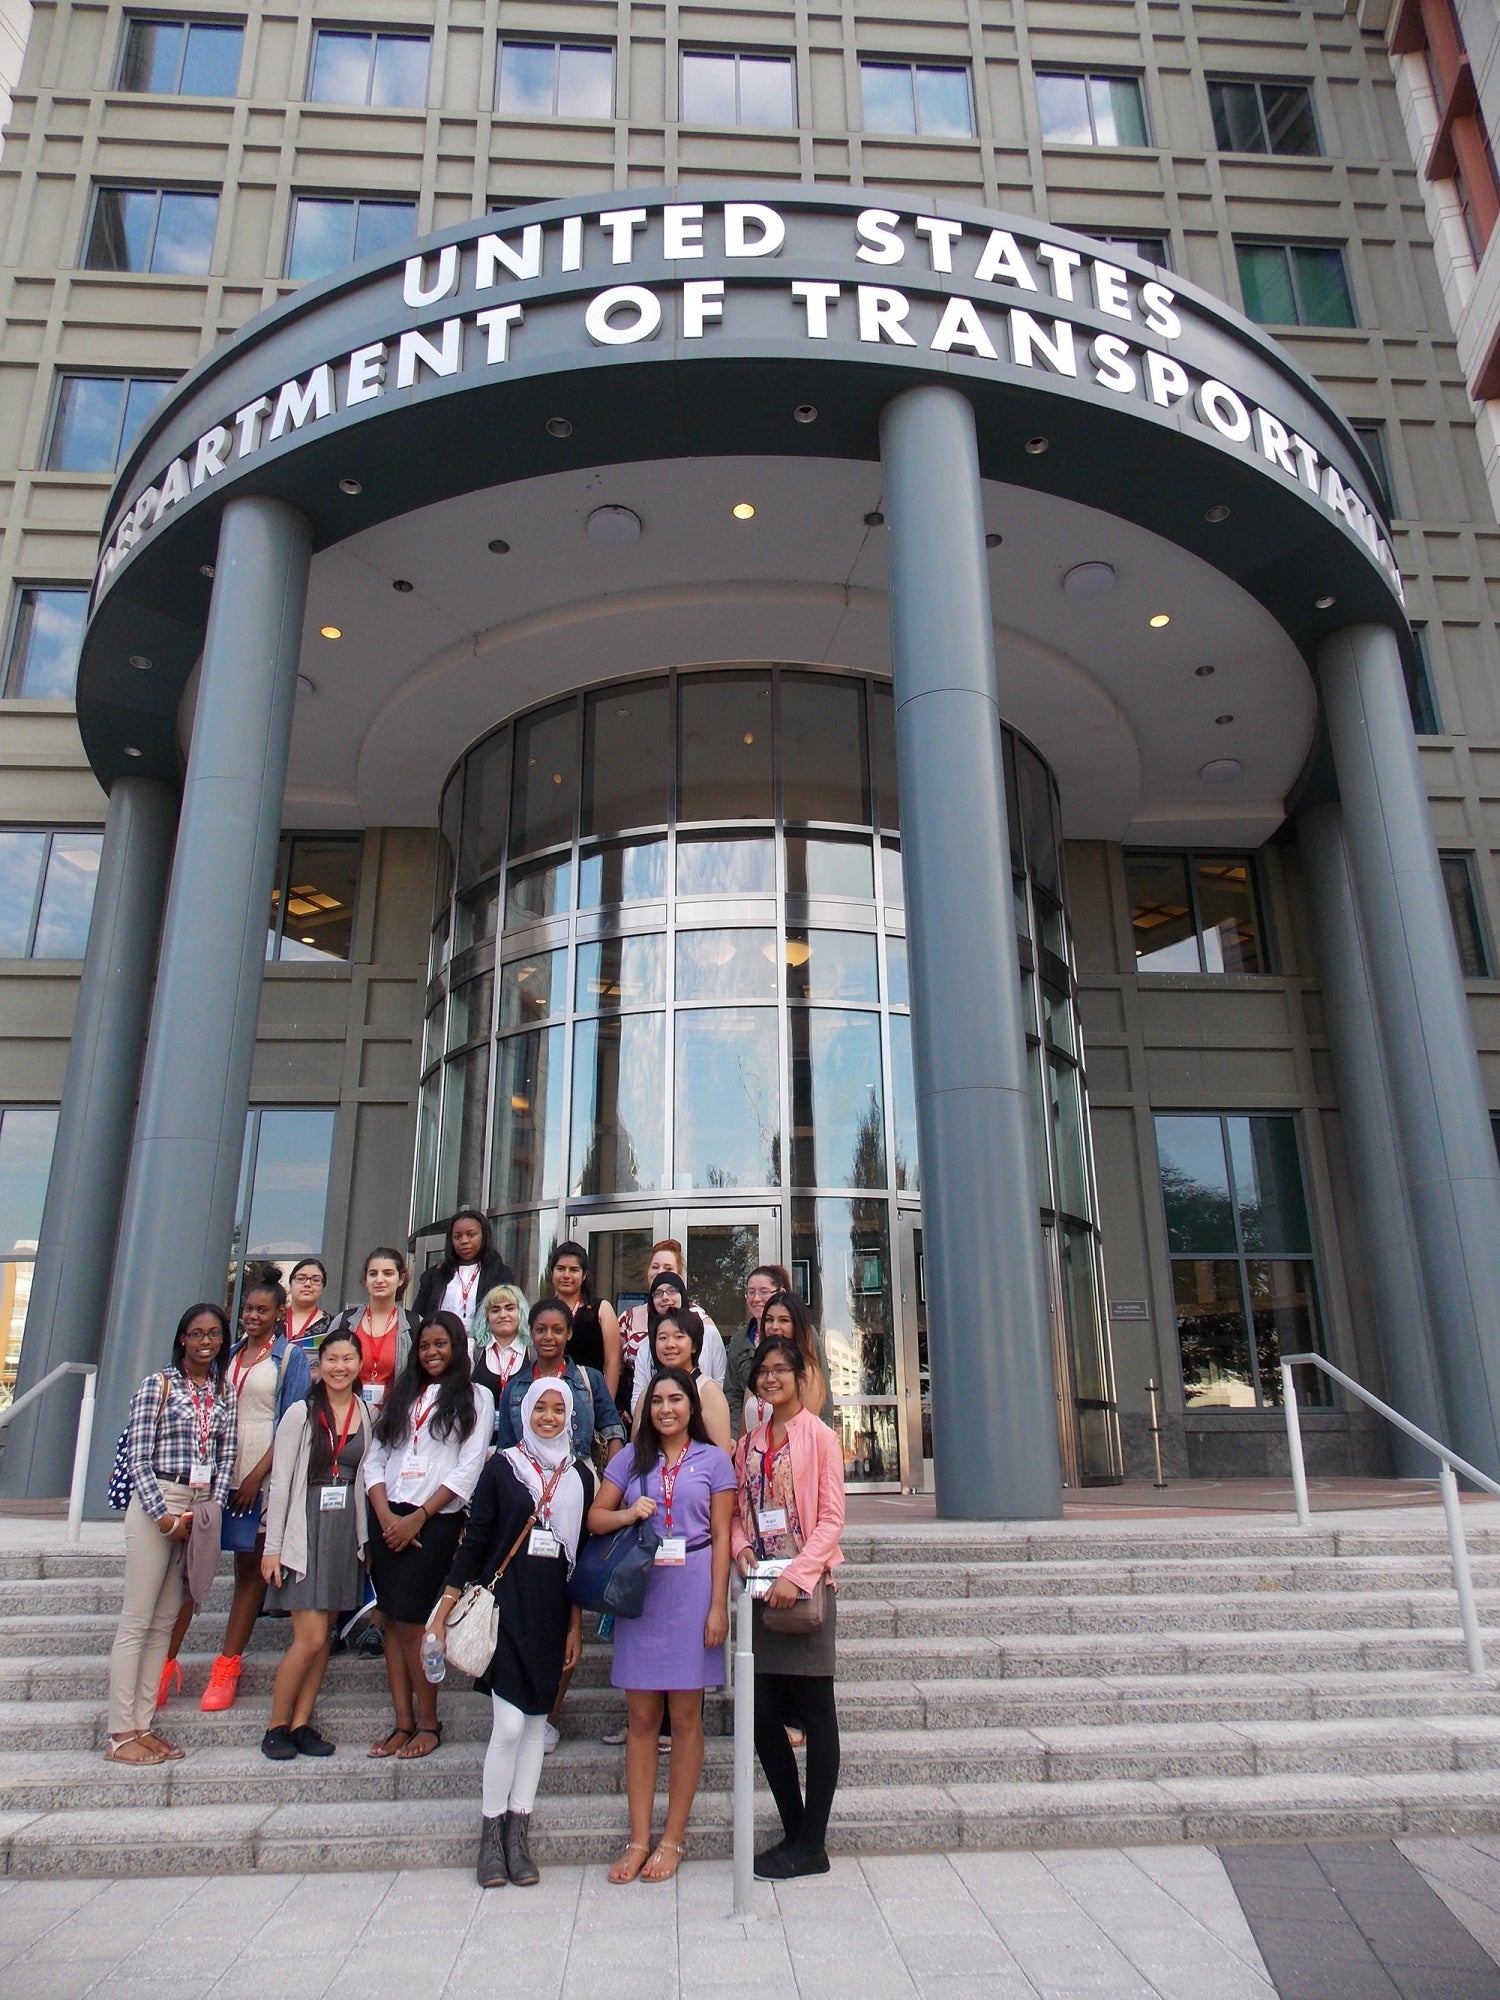 Student participants in Transportation YOU pose for a group photo in front of the Department of Transportation in Washington, D.C.